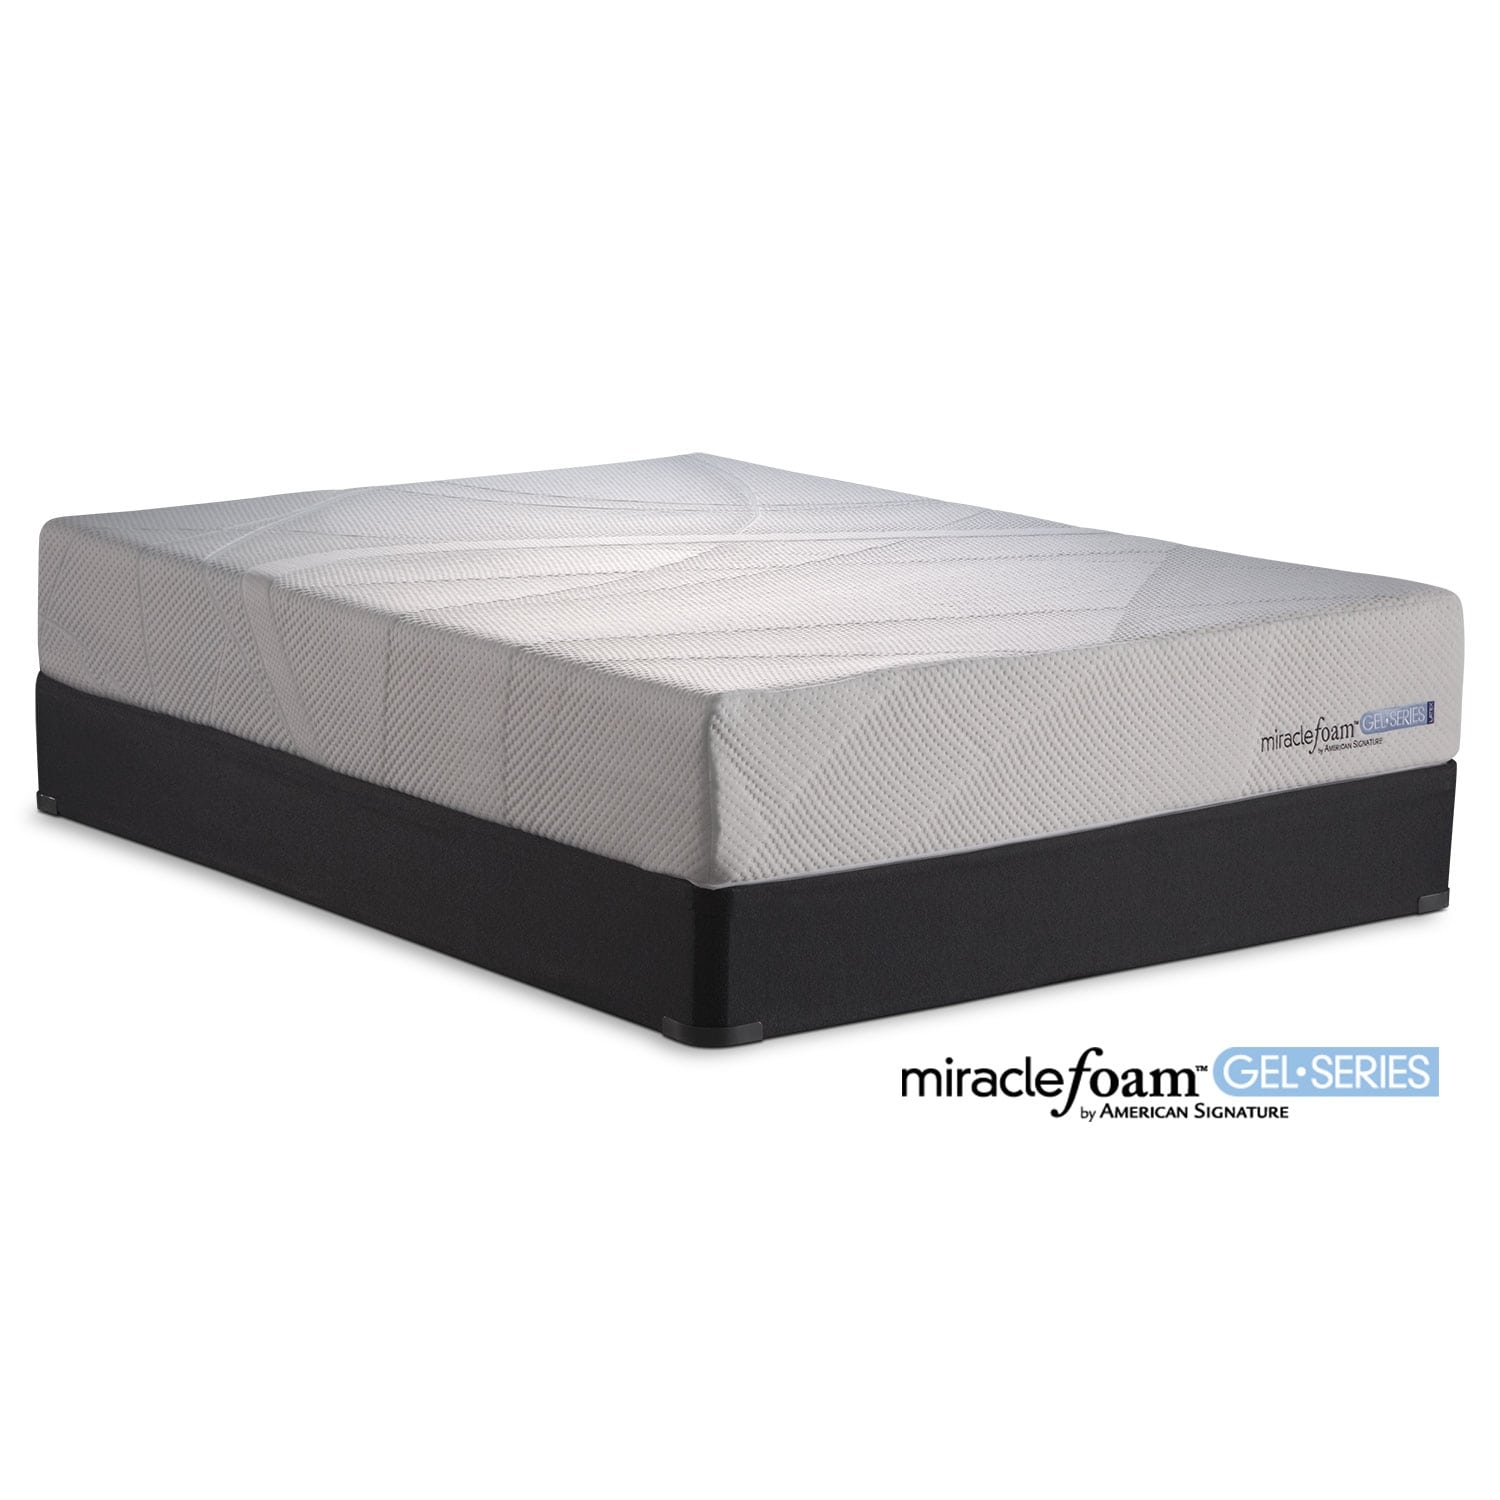 Mattresses and Bedding - Invigorate II Twin Mattress and Foundation Set